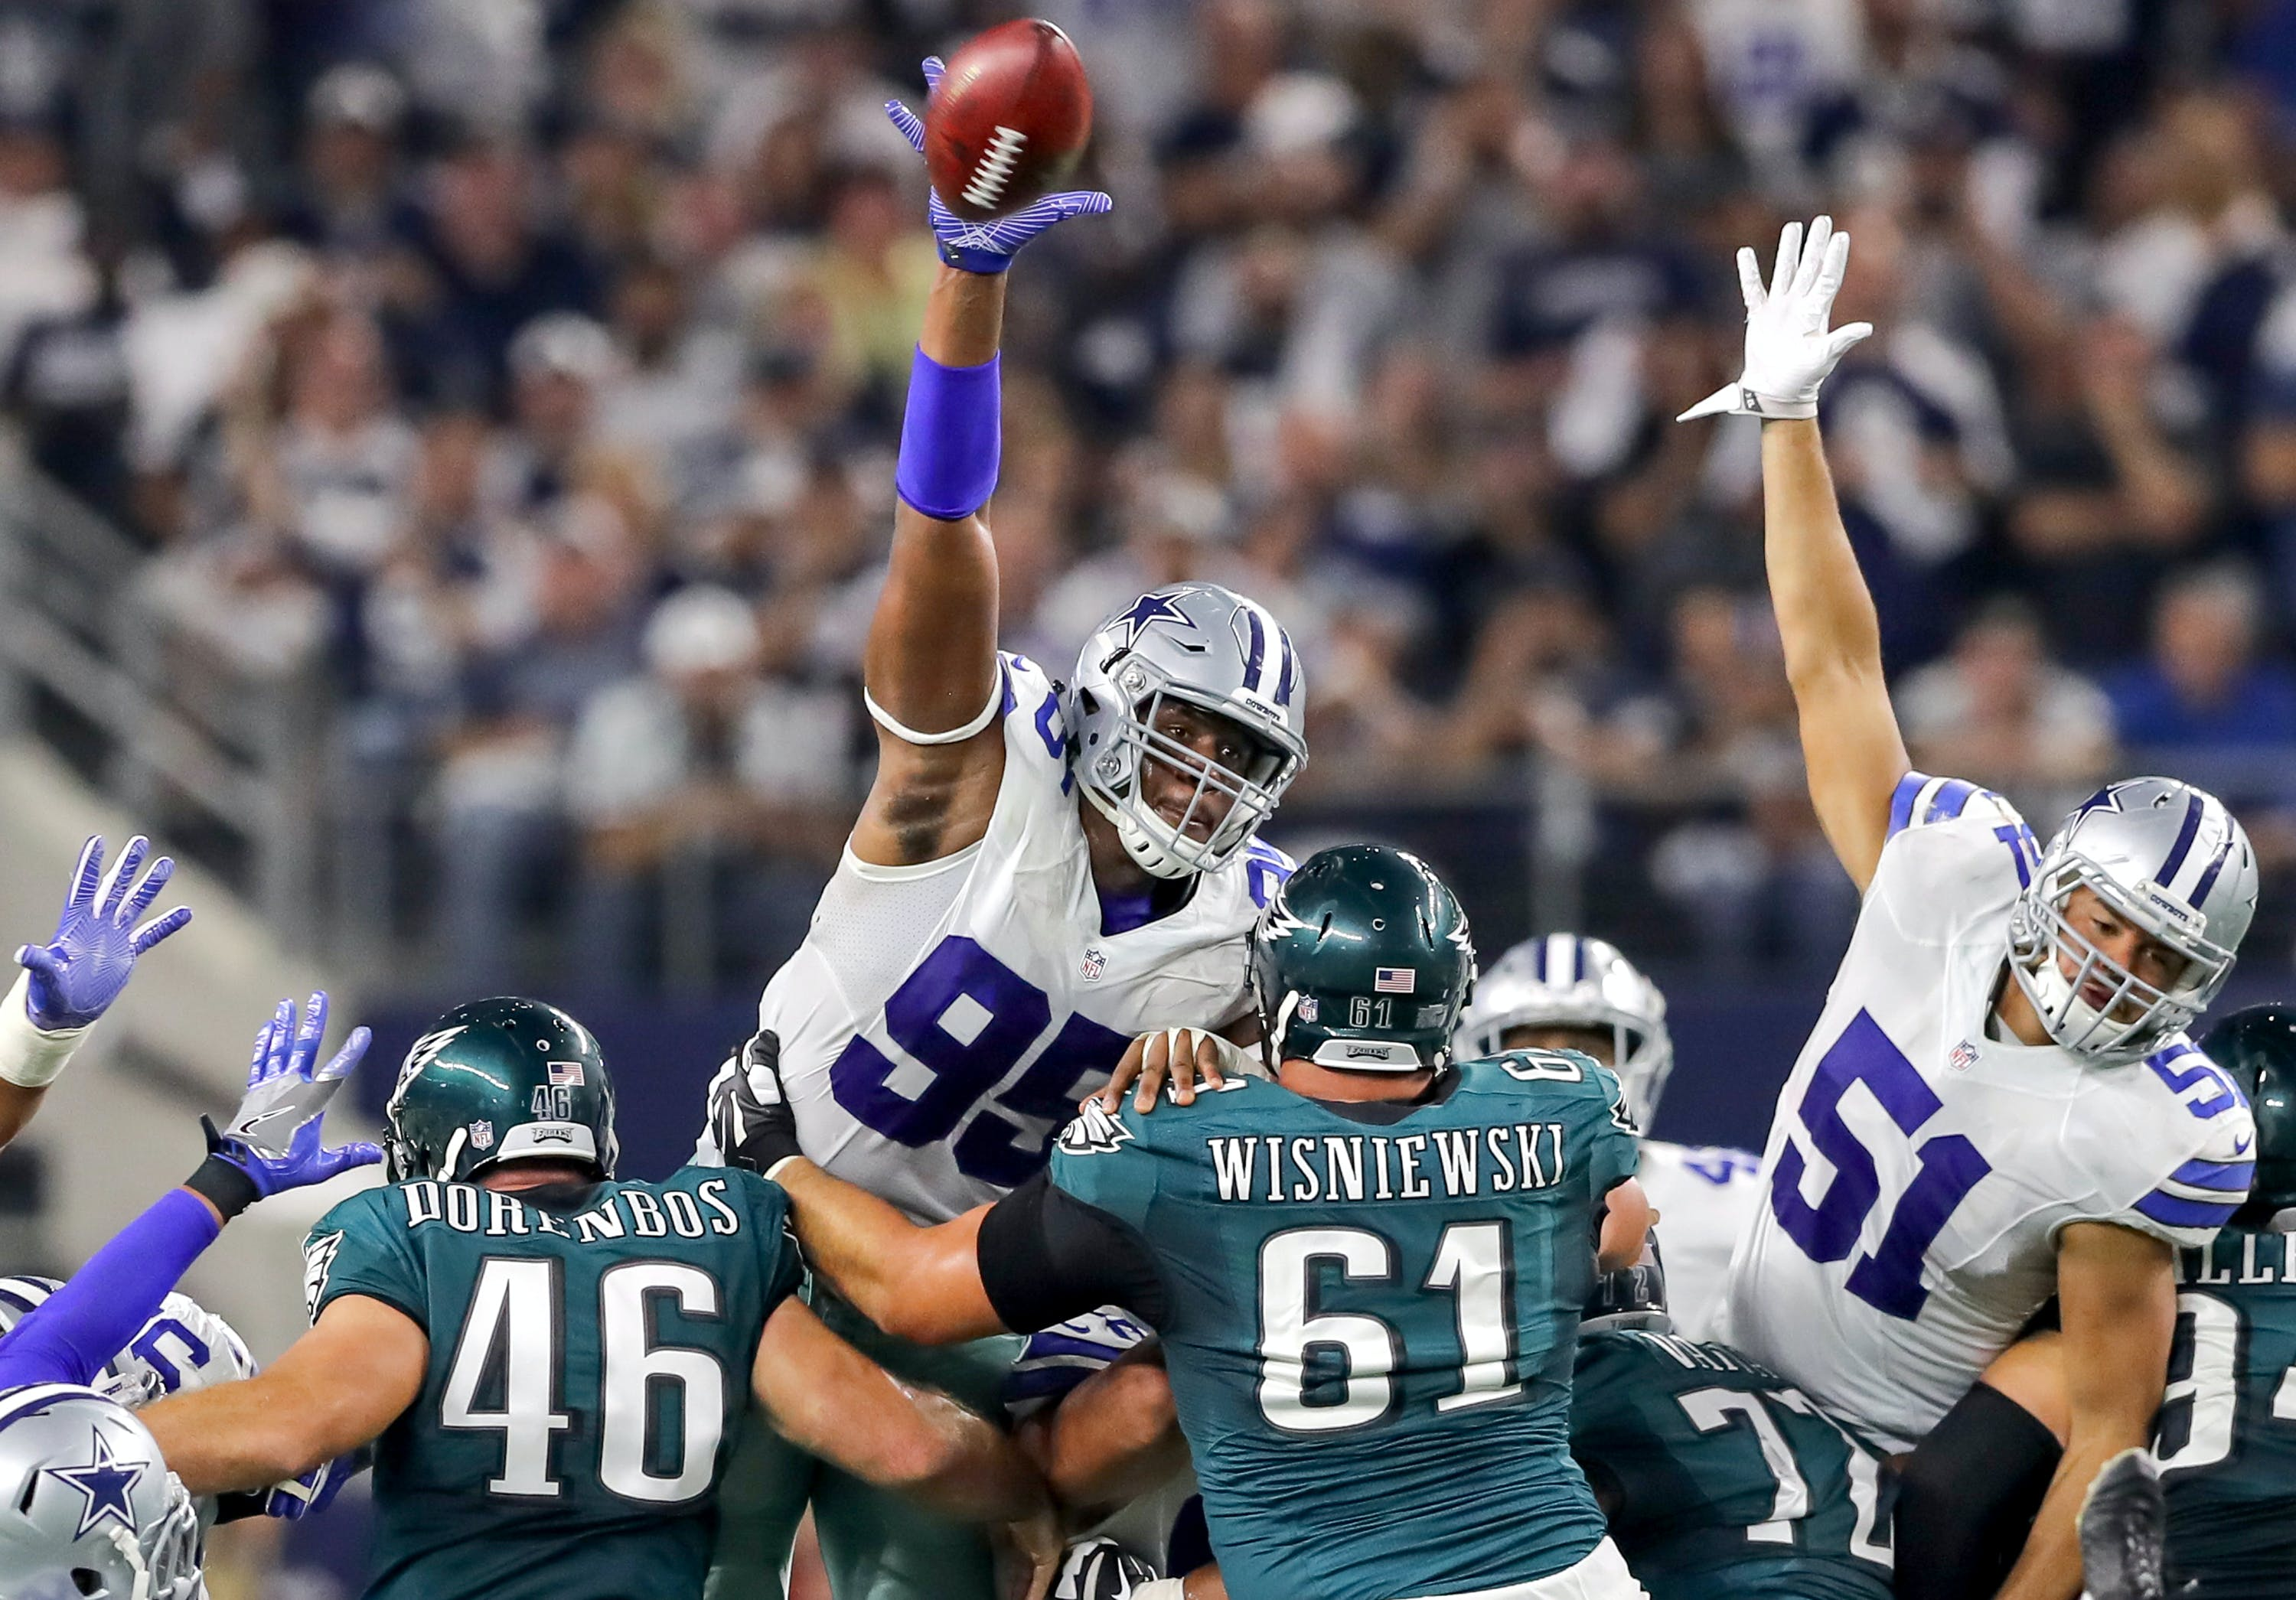 Every game you seen me play in I was medicated says Cowboys David Irving 0 Microdosing Psychedelics Decreases Anxiety, Increases Creativity